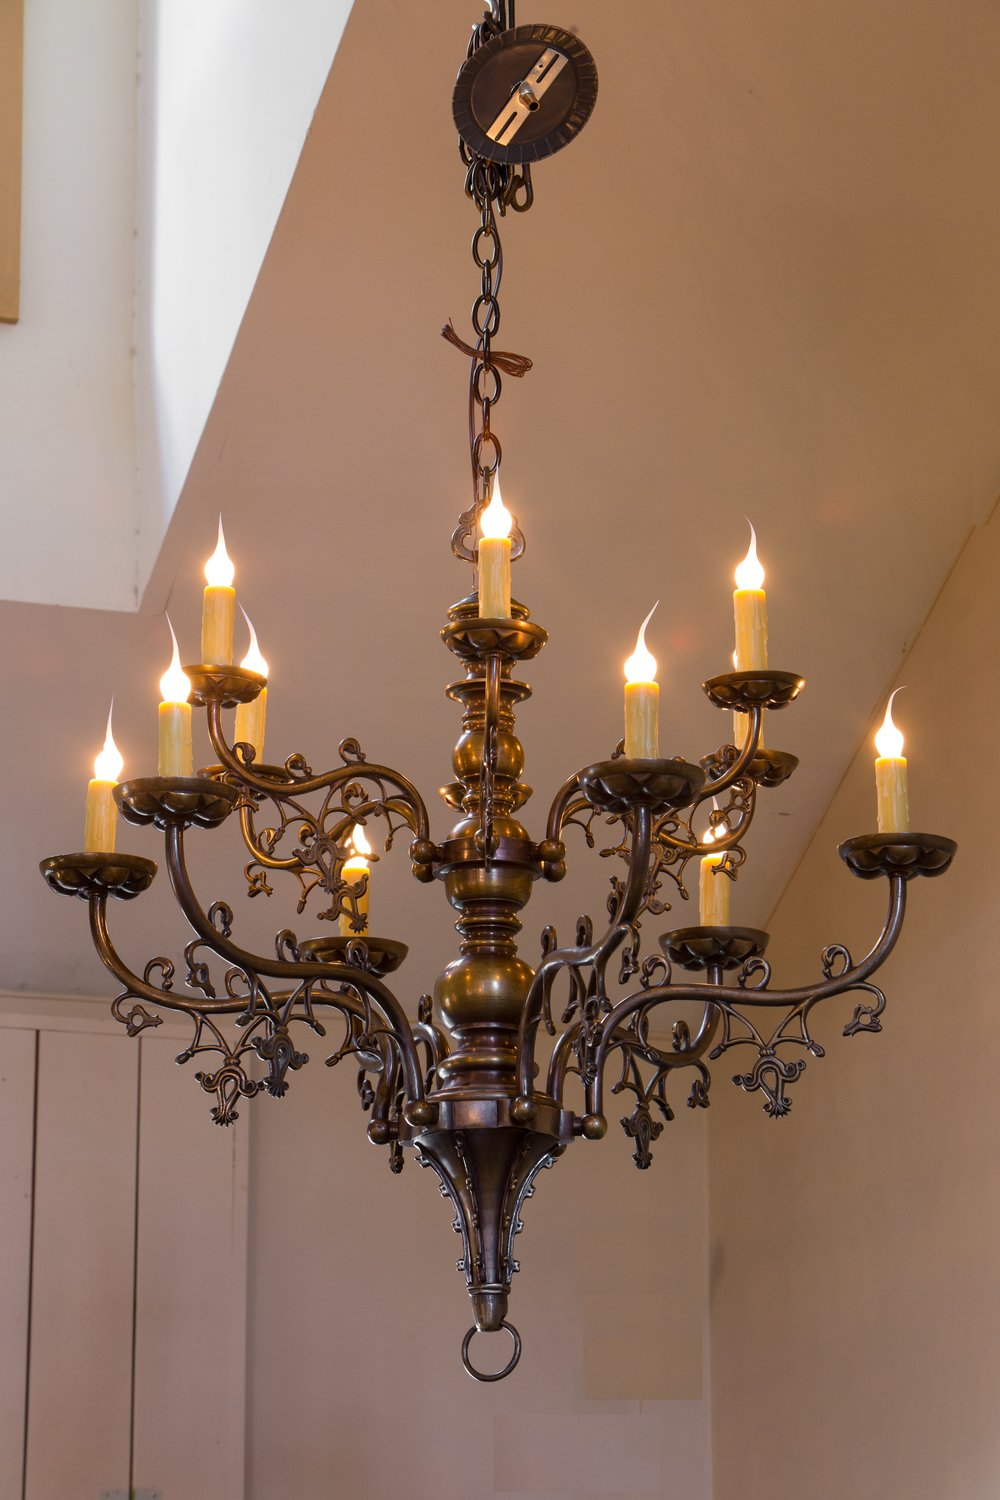 Antique Bronze Gothic Revival Chandelier